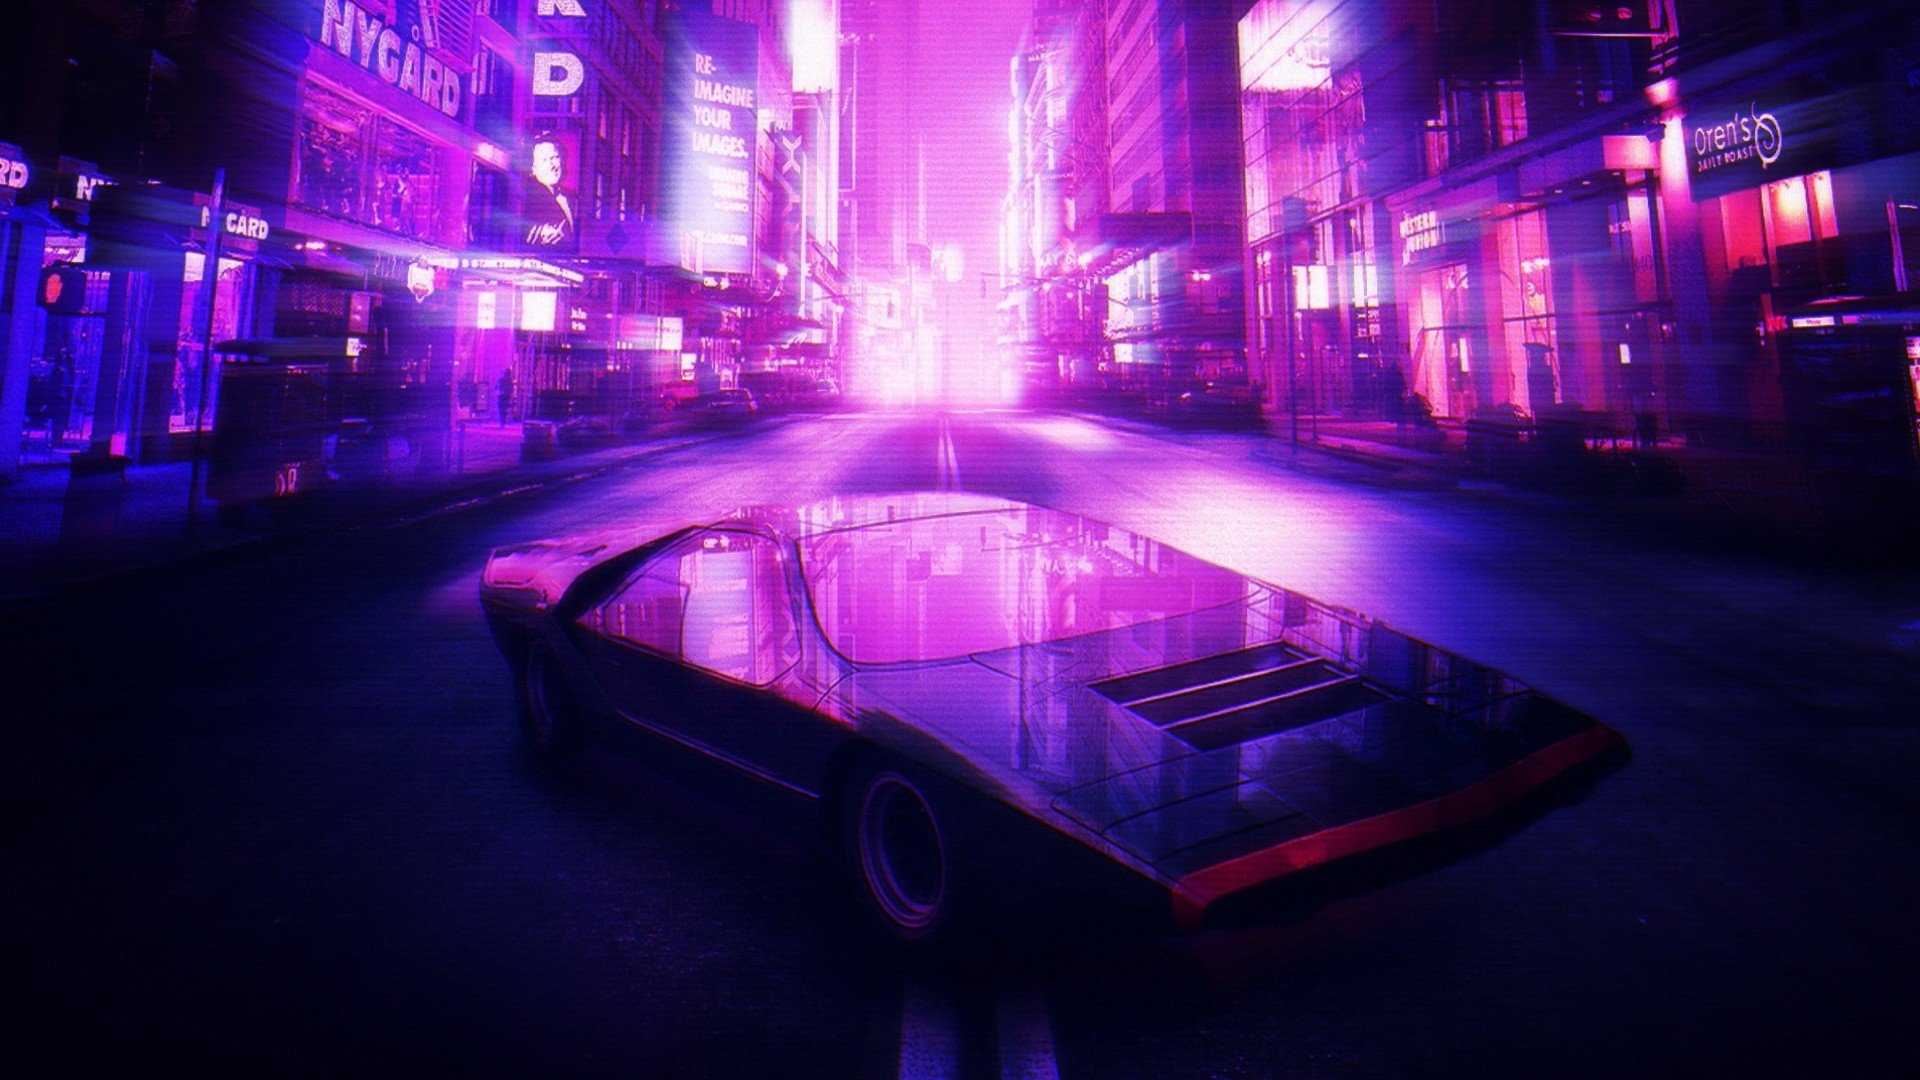 Classic Muscle Car Mobile Wallpaper Retro Style Car 1980s City Synthwave Bertone Alfa